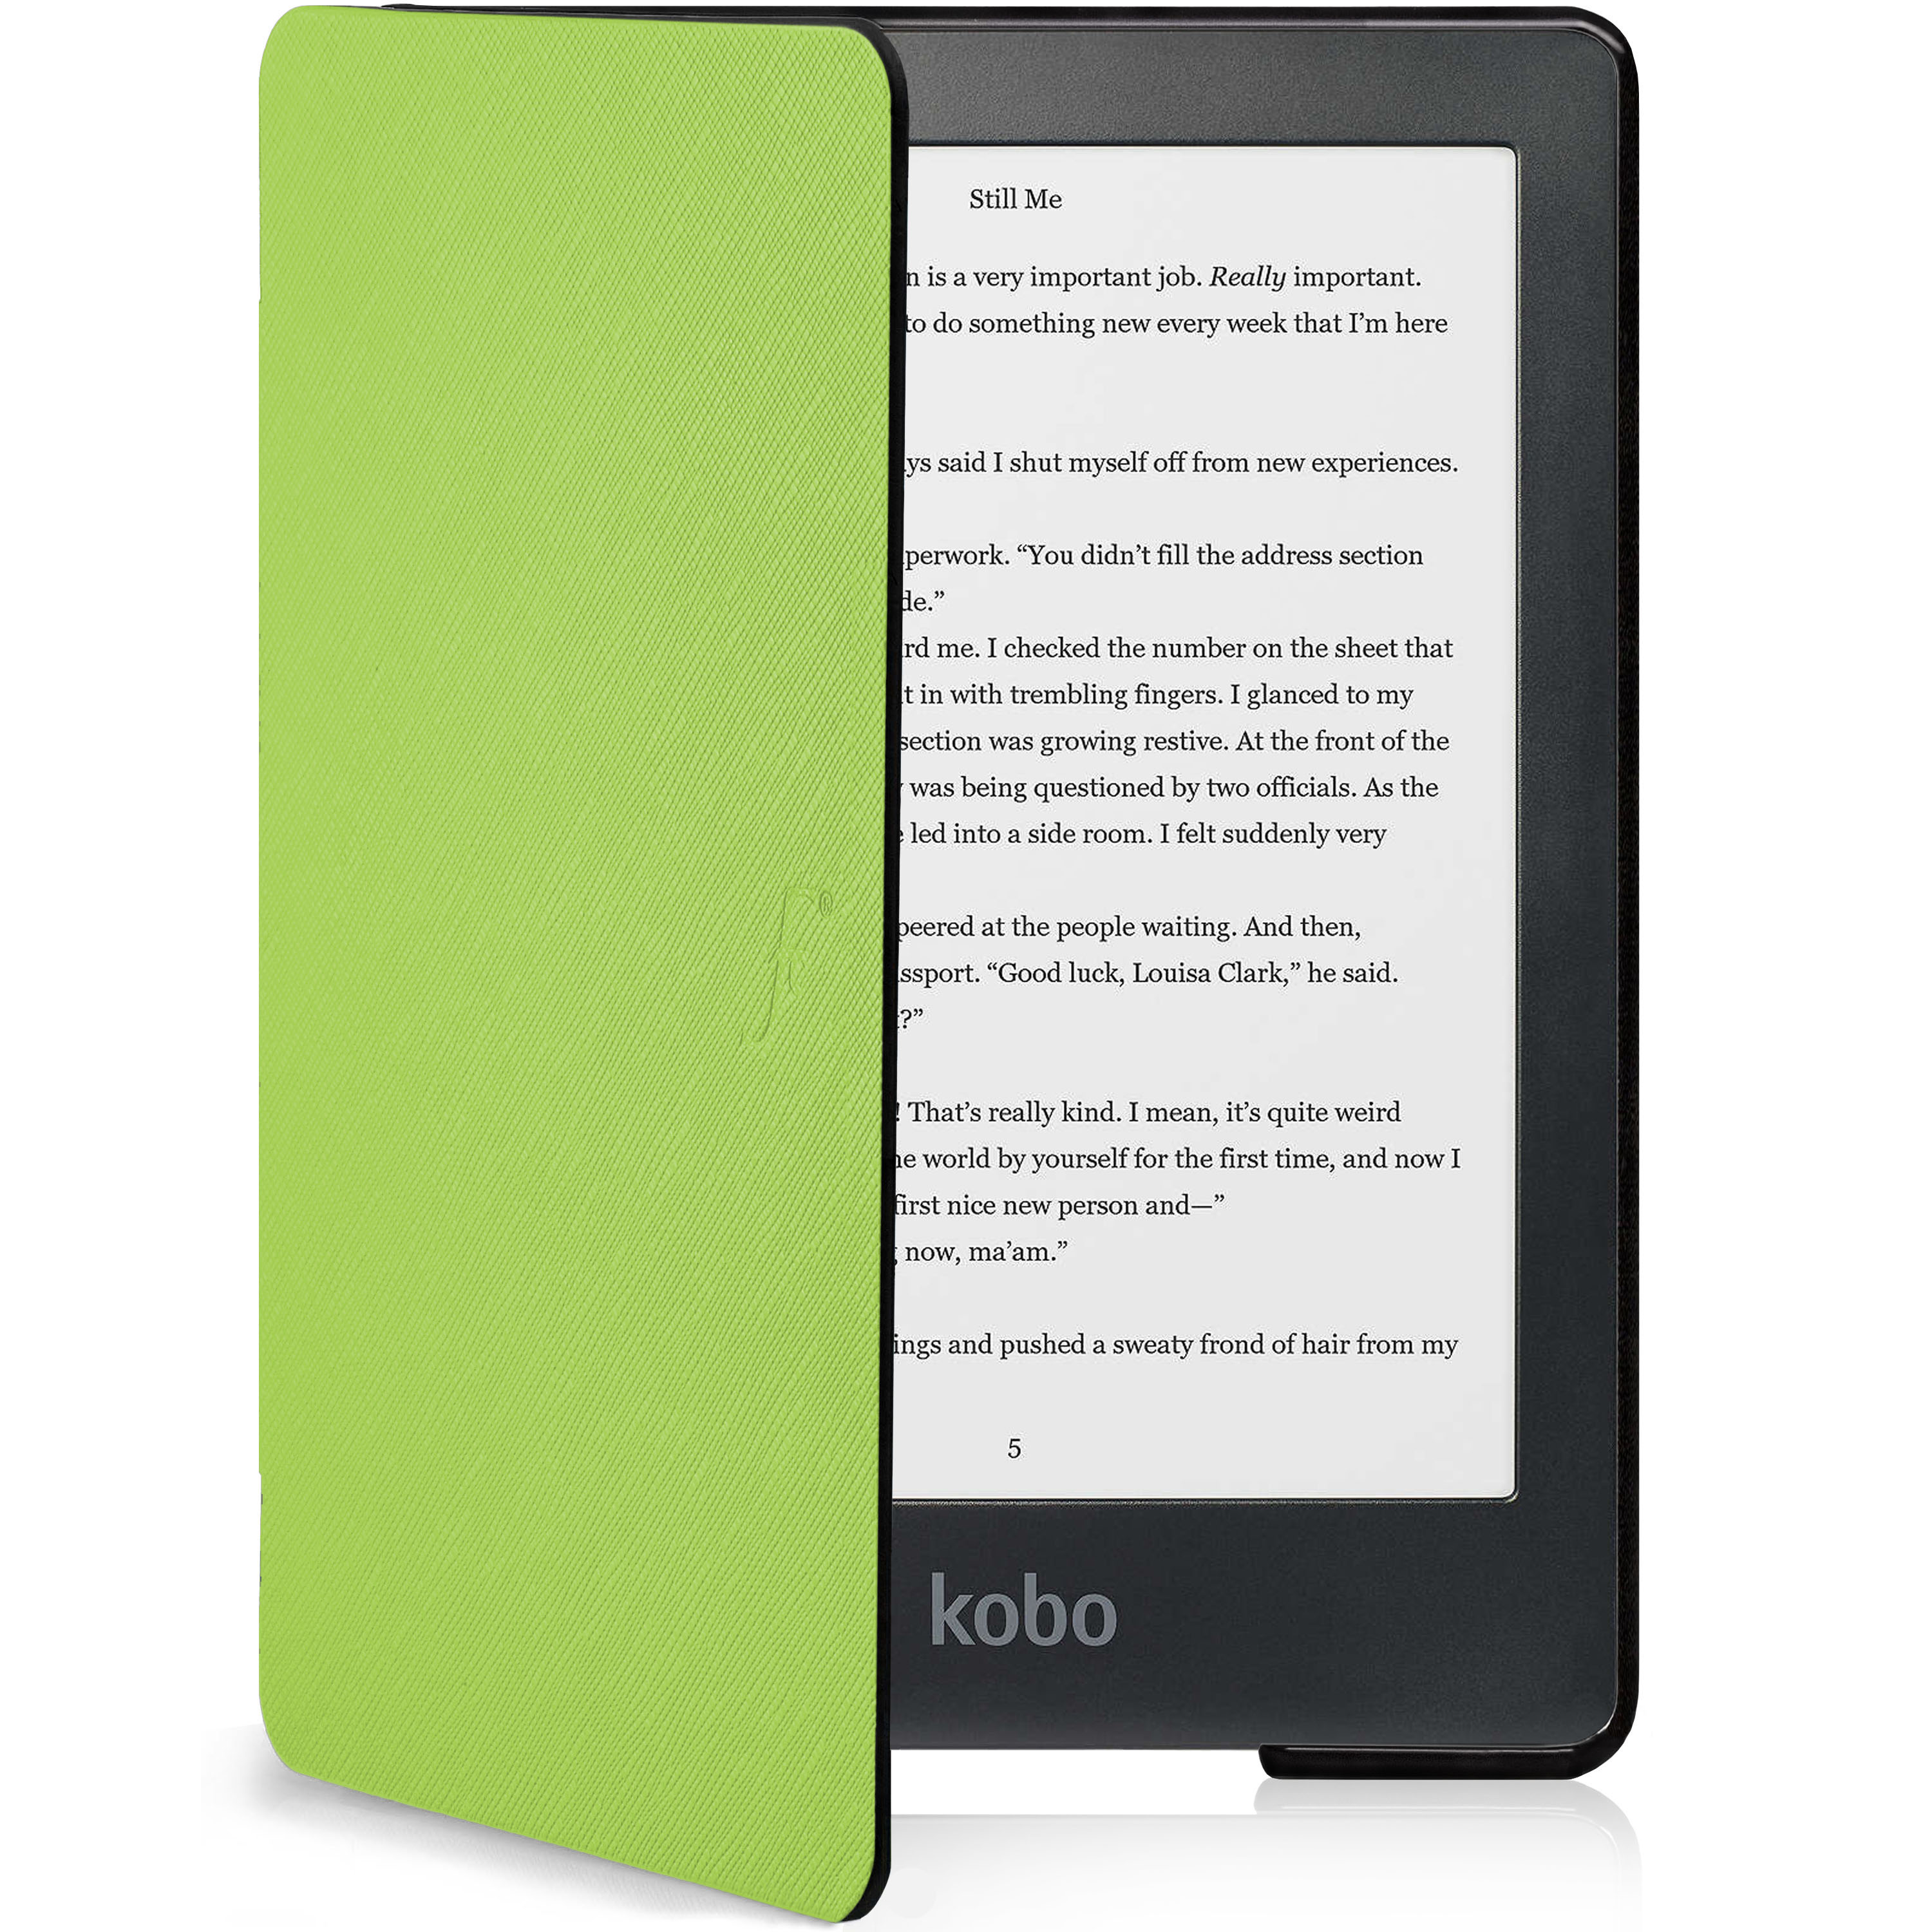 Strap kwmobile Case Compatible with Kobo Clara HD Math /& Physics Formulas White//Black PU Leather Cover with Magnetic Closure Front Pocket